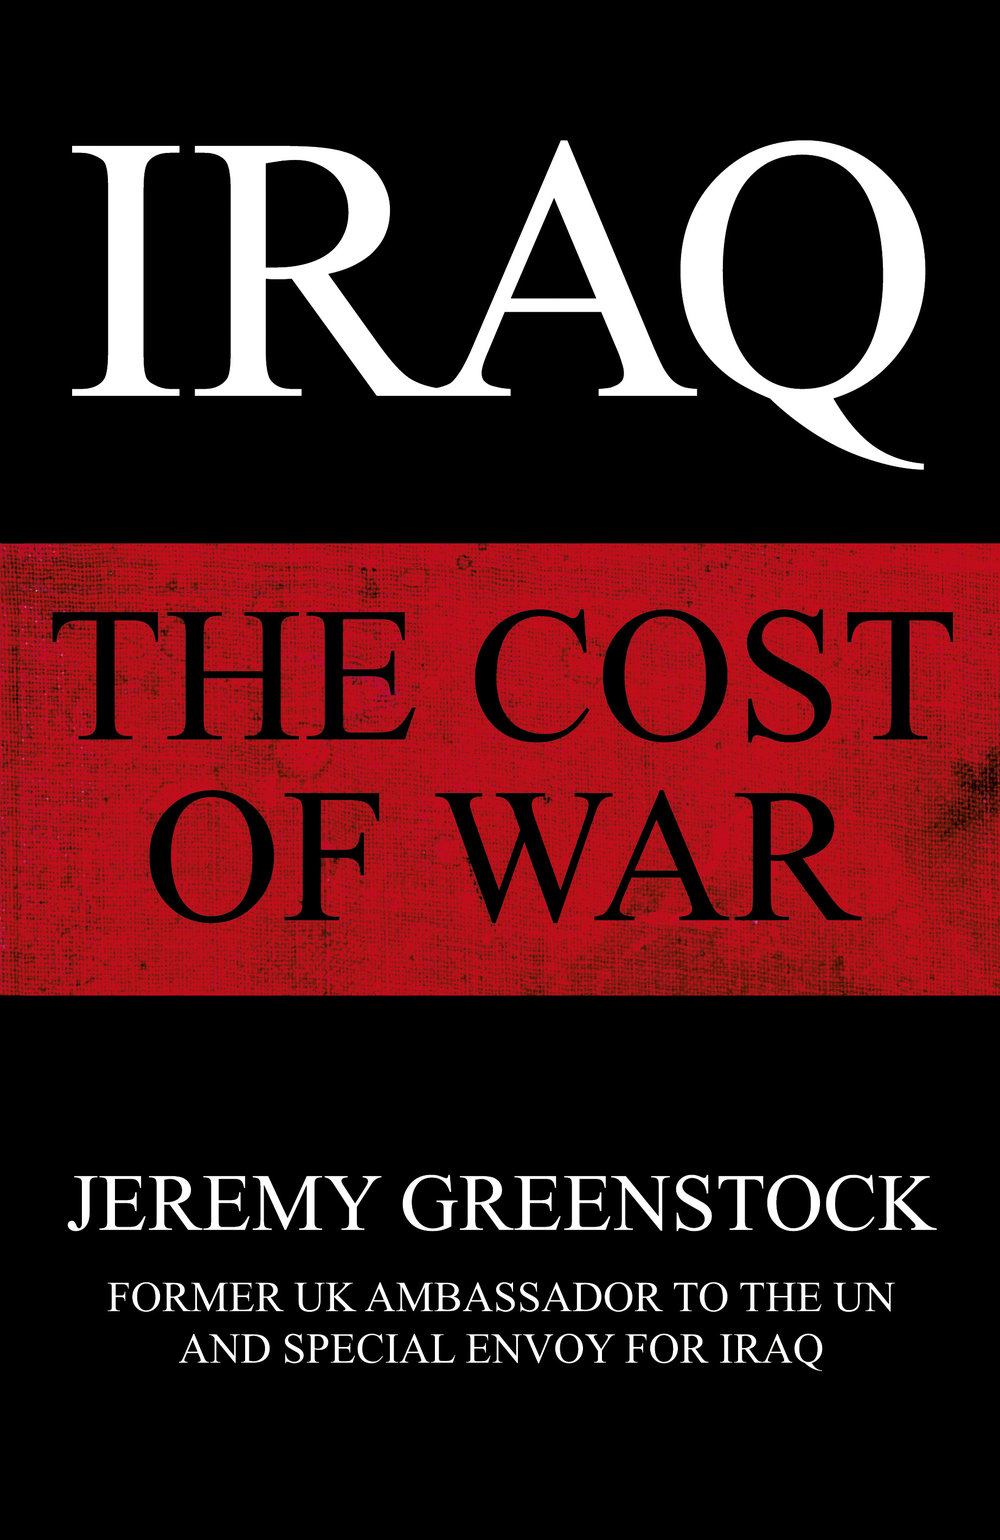 Jeremy Greenstock Iraq The Cost of War jacket.jpg